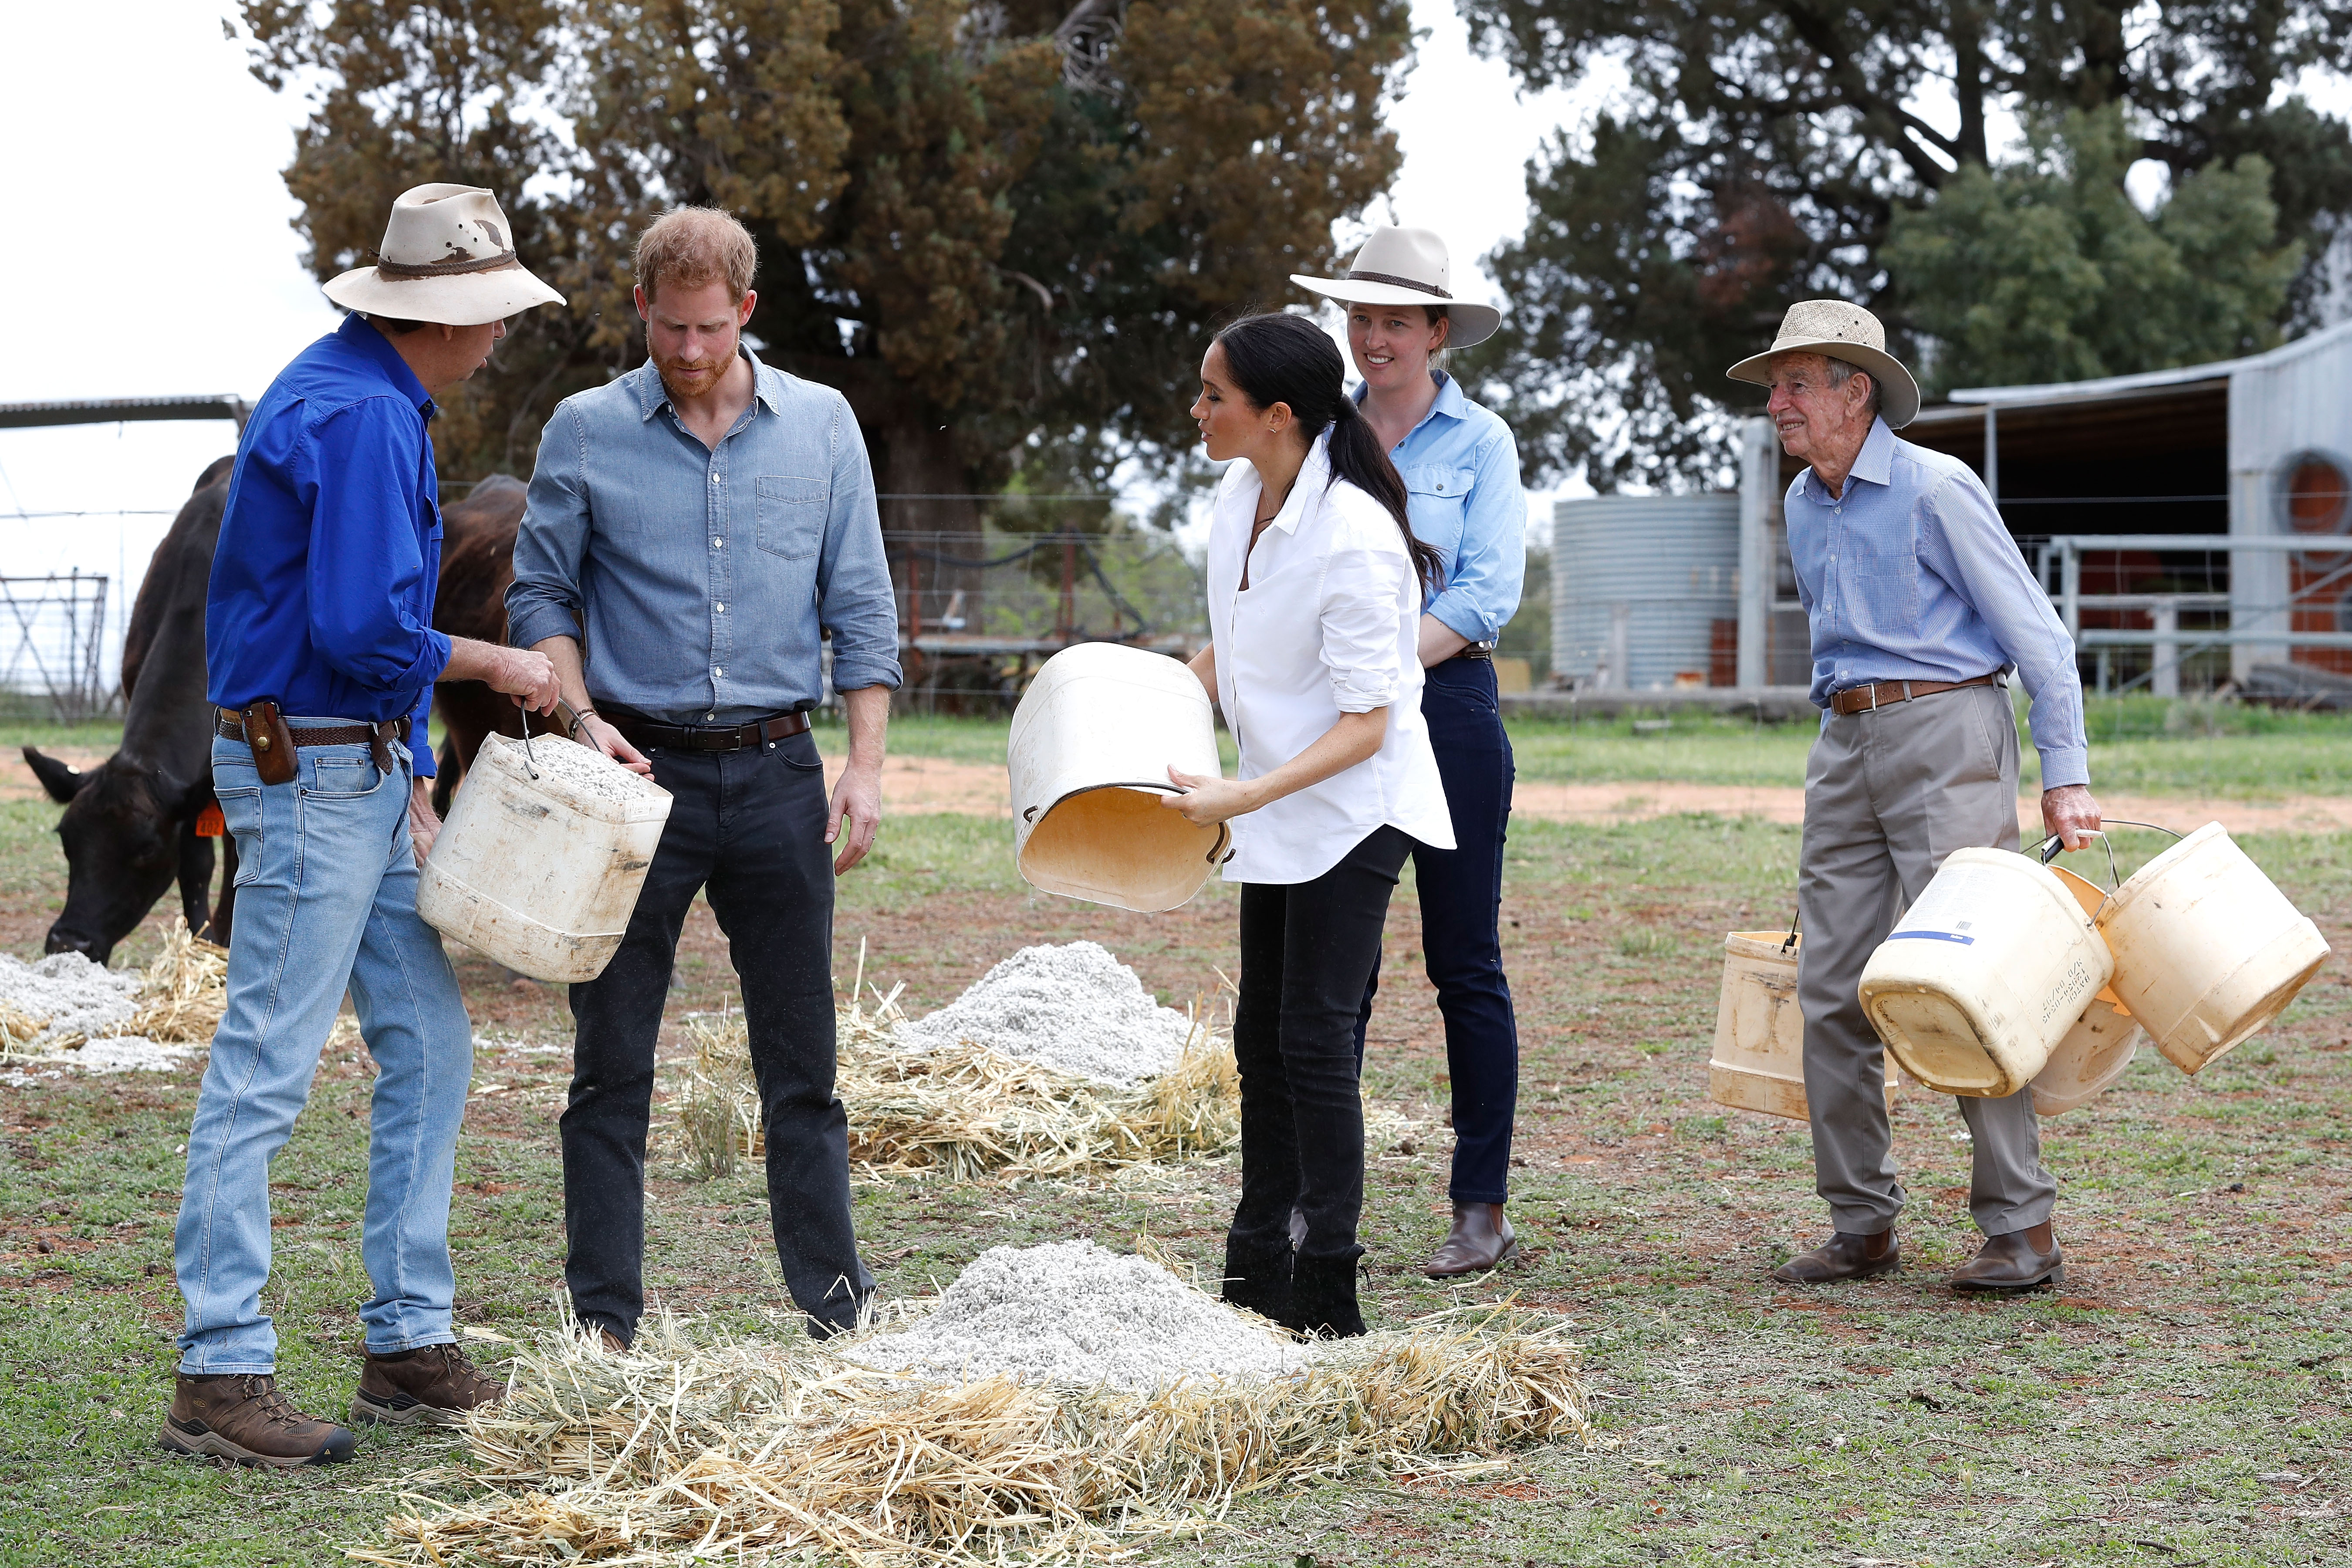 Prince Harry, Duke of Sussex and Meghan, Duchess of Sussex visit a local farming family, the Woodleys, on October 17, 2018, in Dubbo, Australia. (Getty Images)